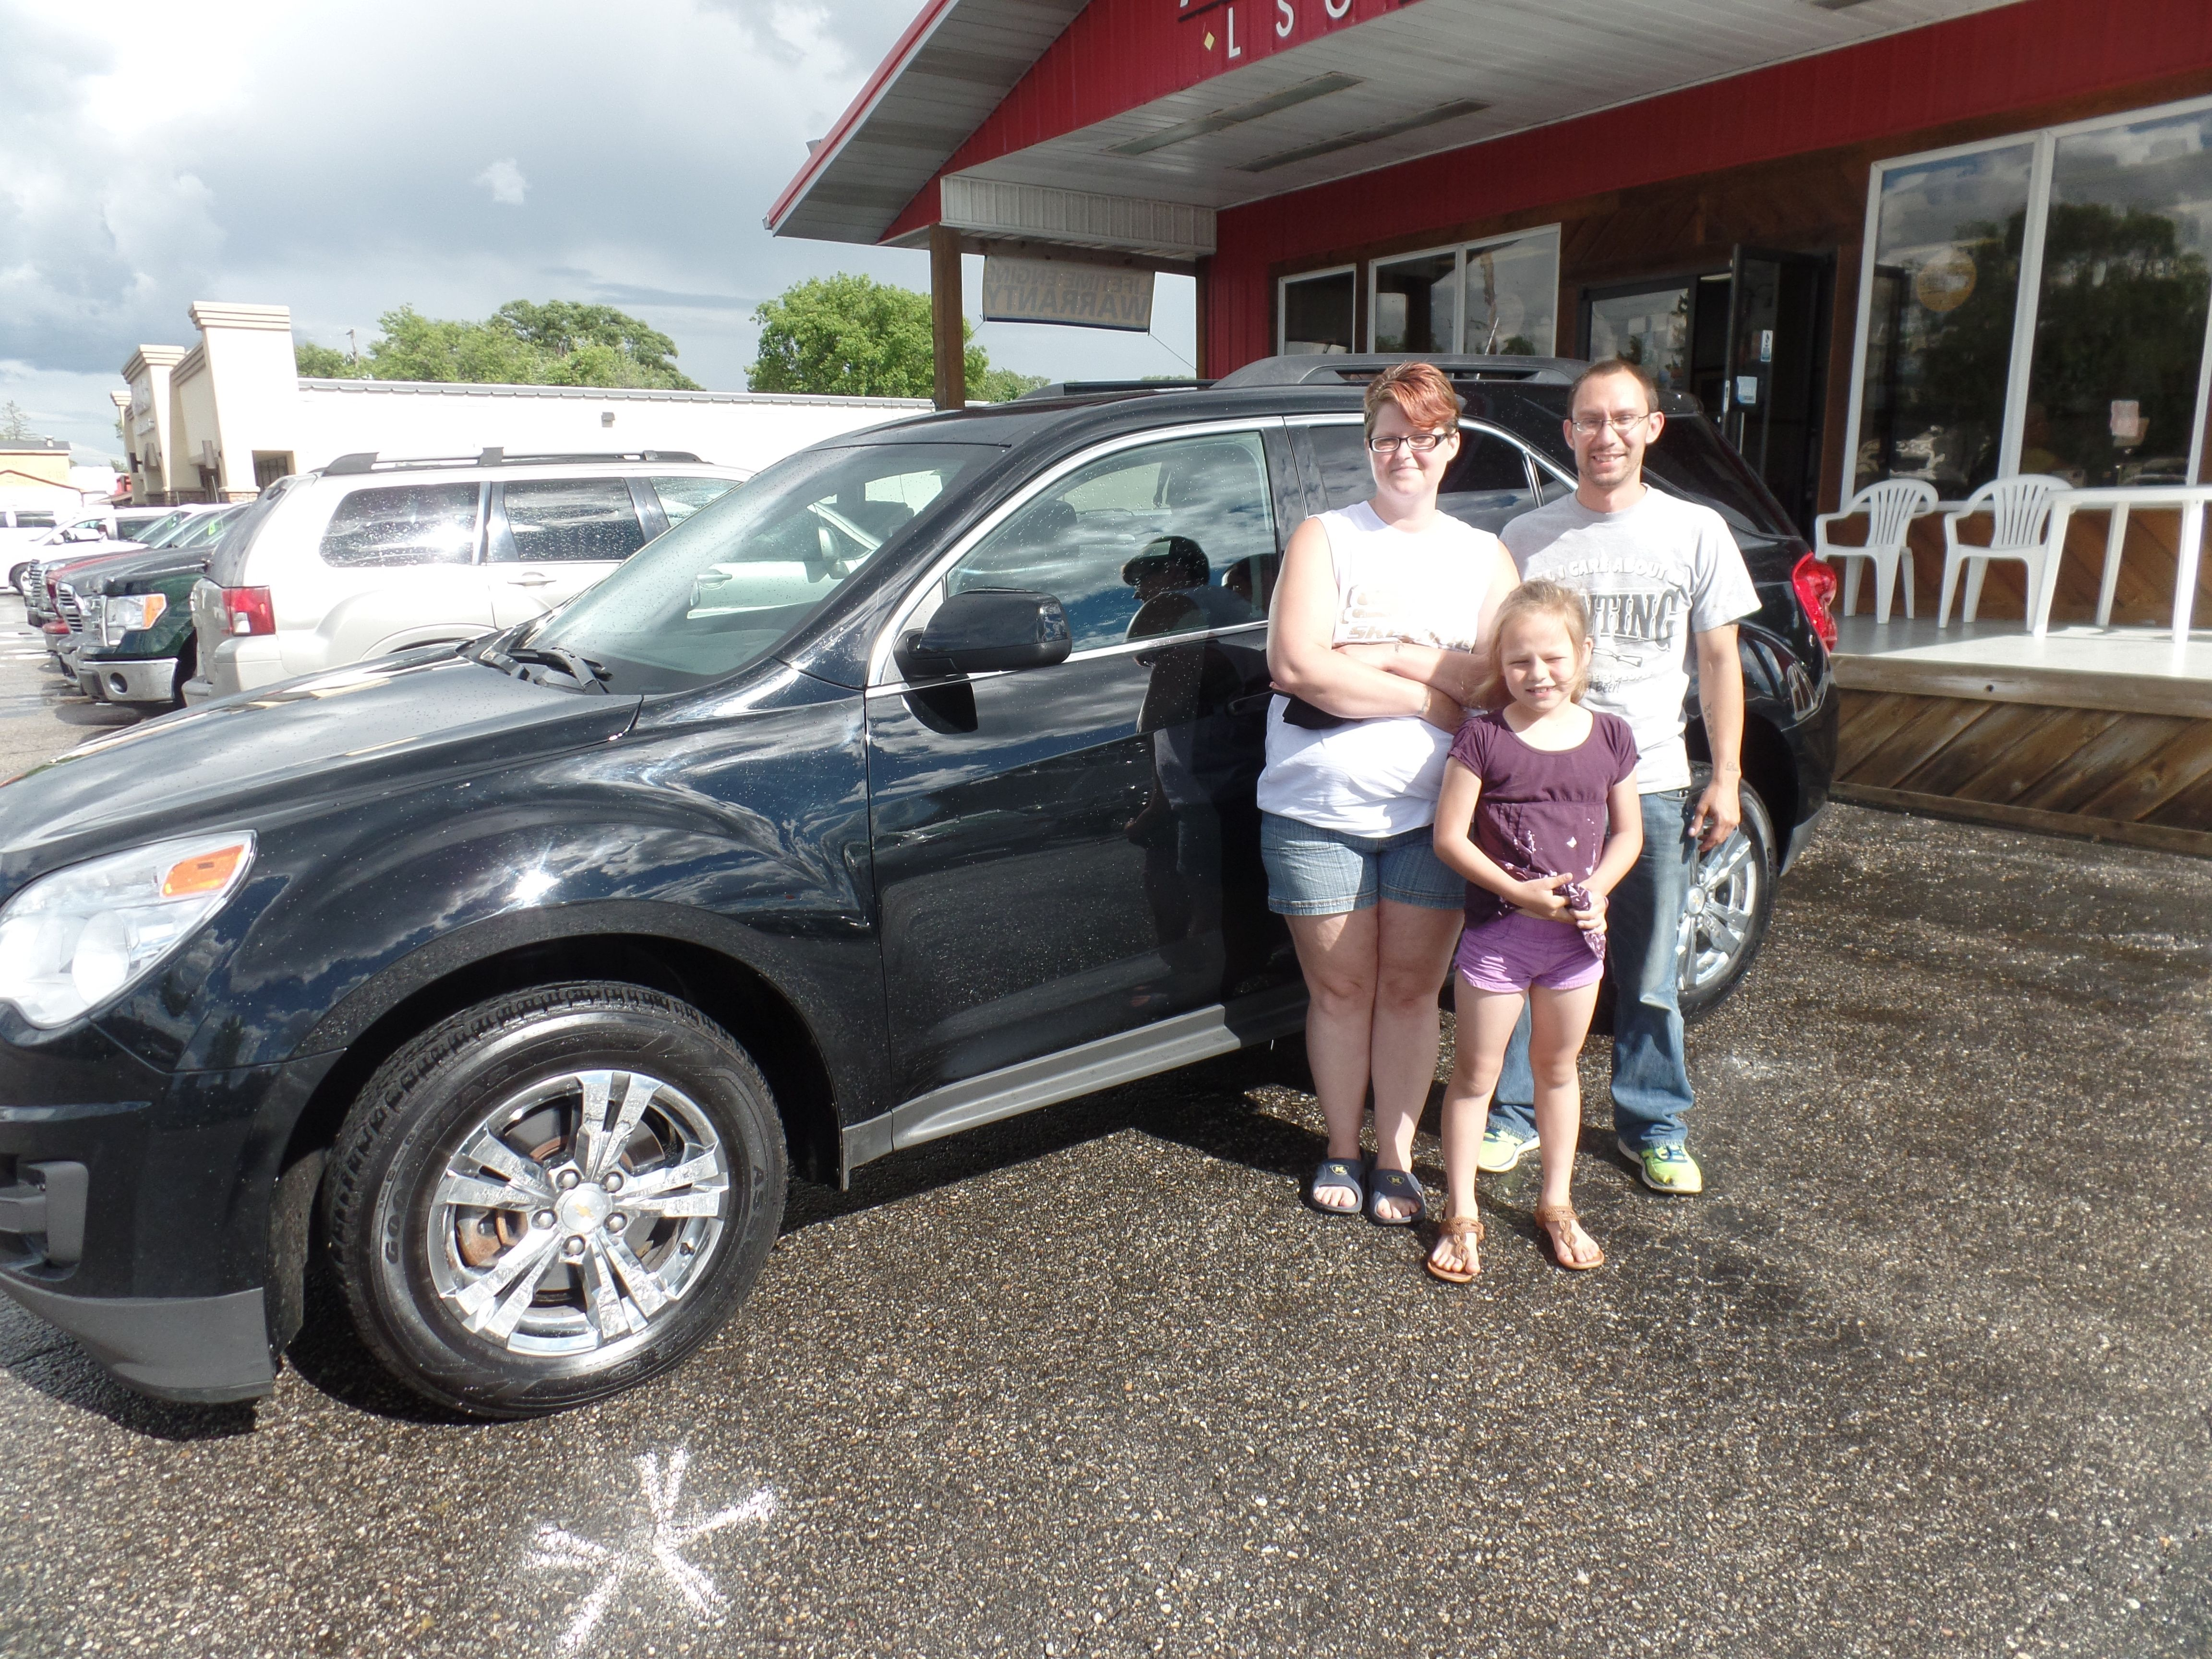 Congratulations To The Mcconnell Family On Their Purchase Of A New Chevrolet Equinox We Appreciate The Opportunity To Earn Your Business Chevrolet Equinox Chevrolet Vehicles